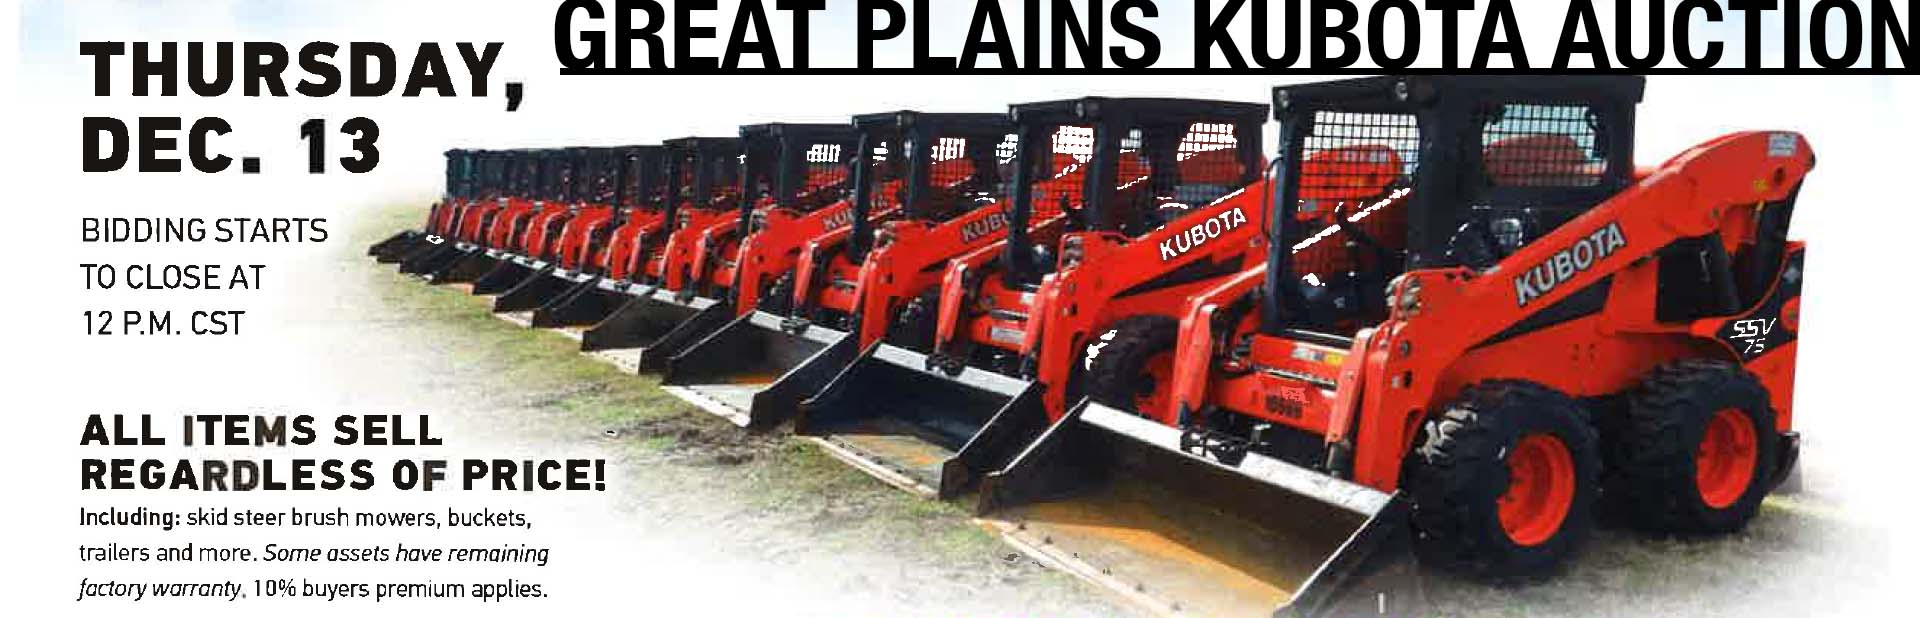 Great Plains Kubota Auction